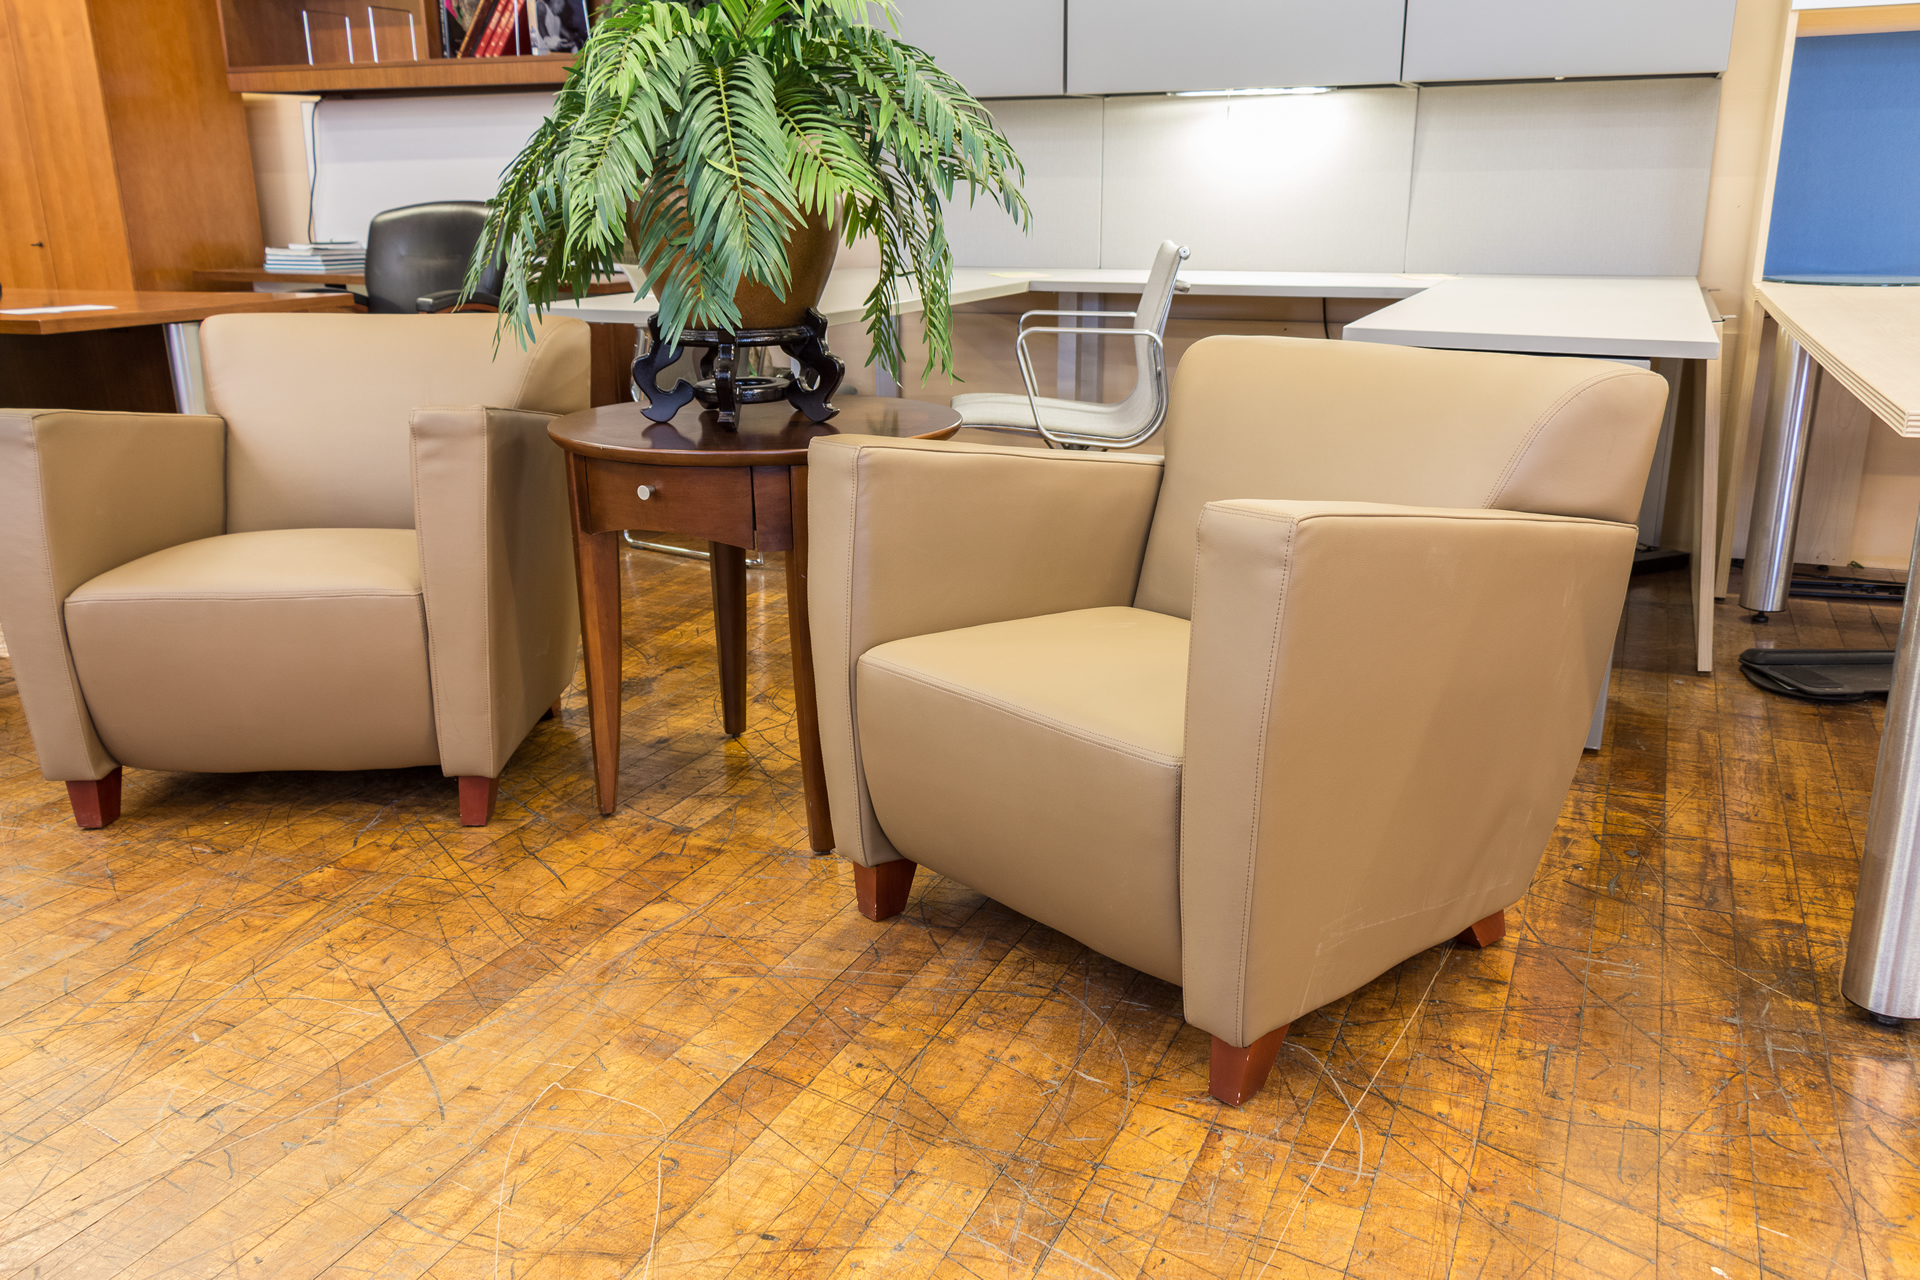 peartreeofficefurniture_peartreeofficefurniture_peartreeofficefurniture_office-star-lounge-taupe-leather-club-chairs-2.jpg